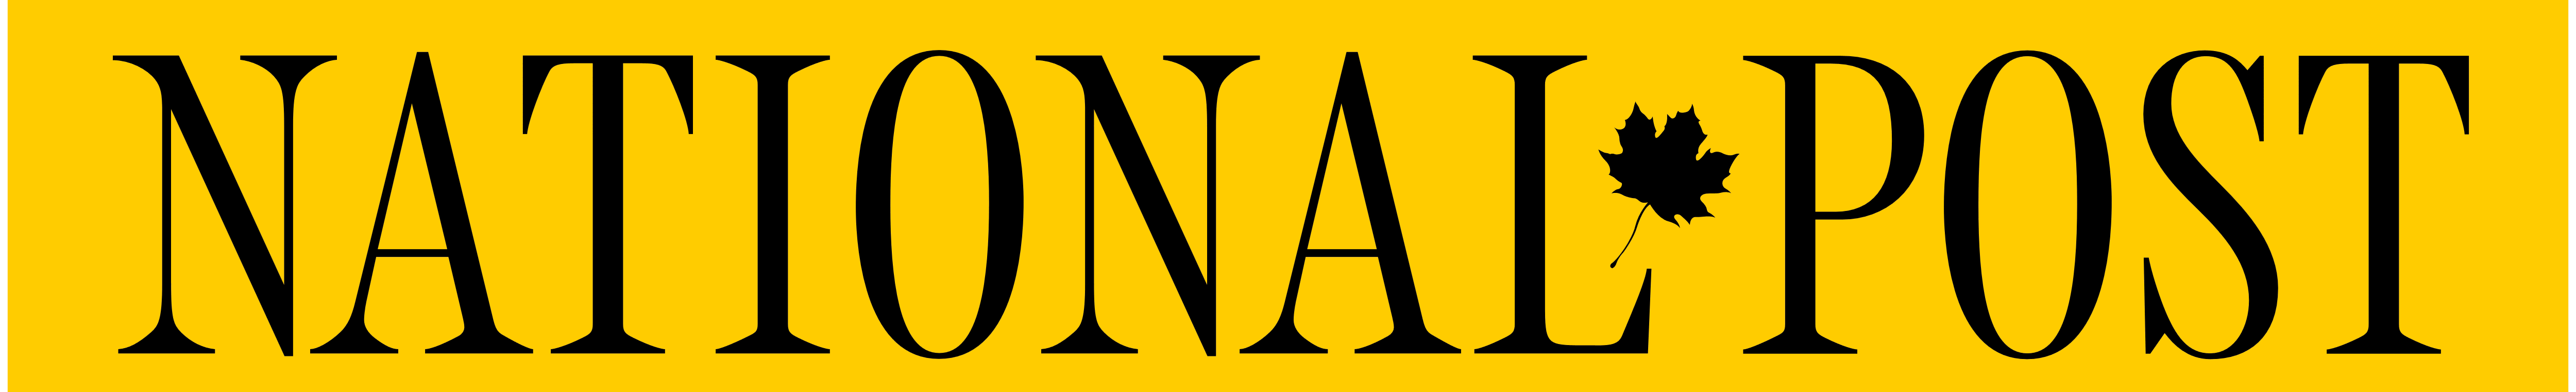 national post logo in black letters on yellow background